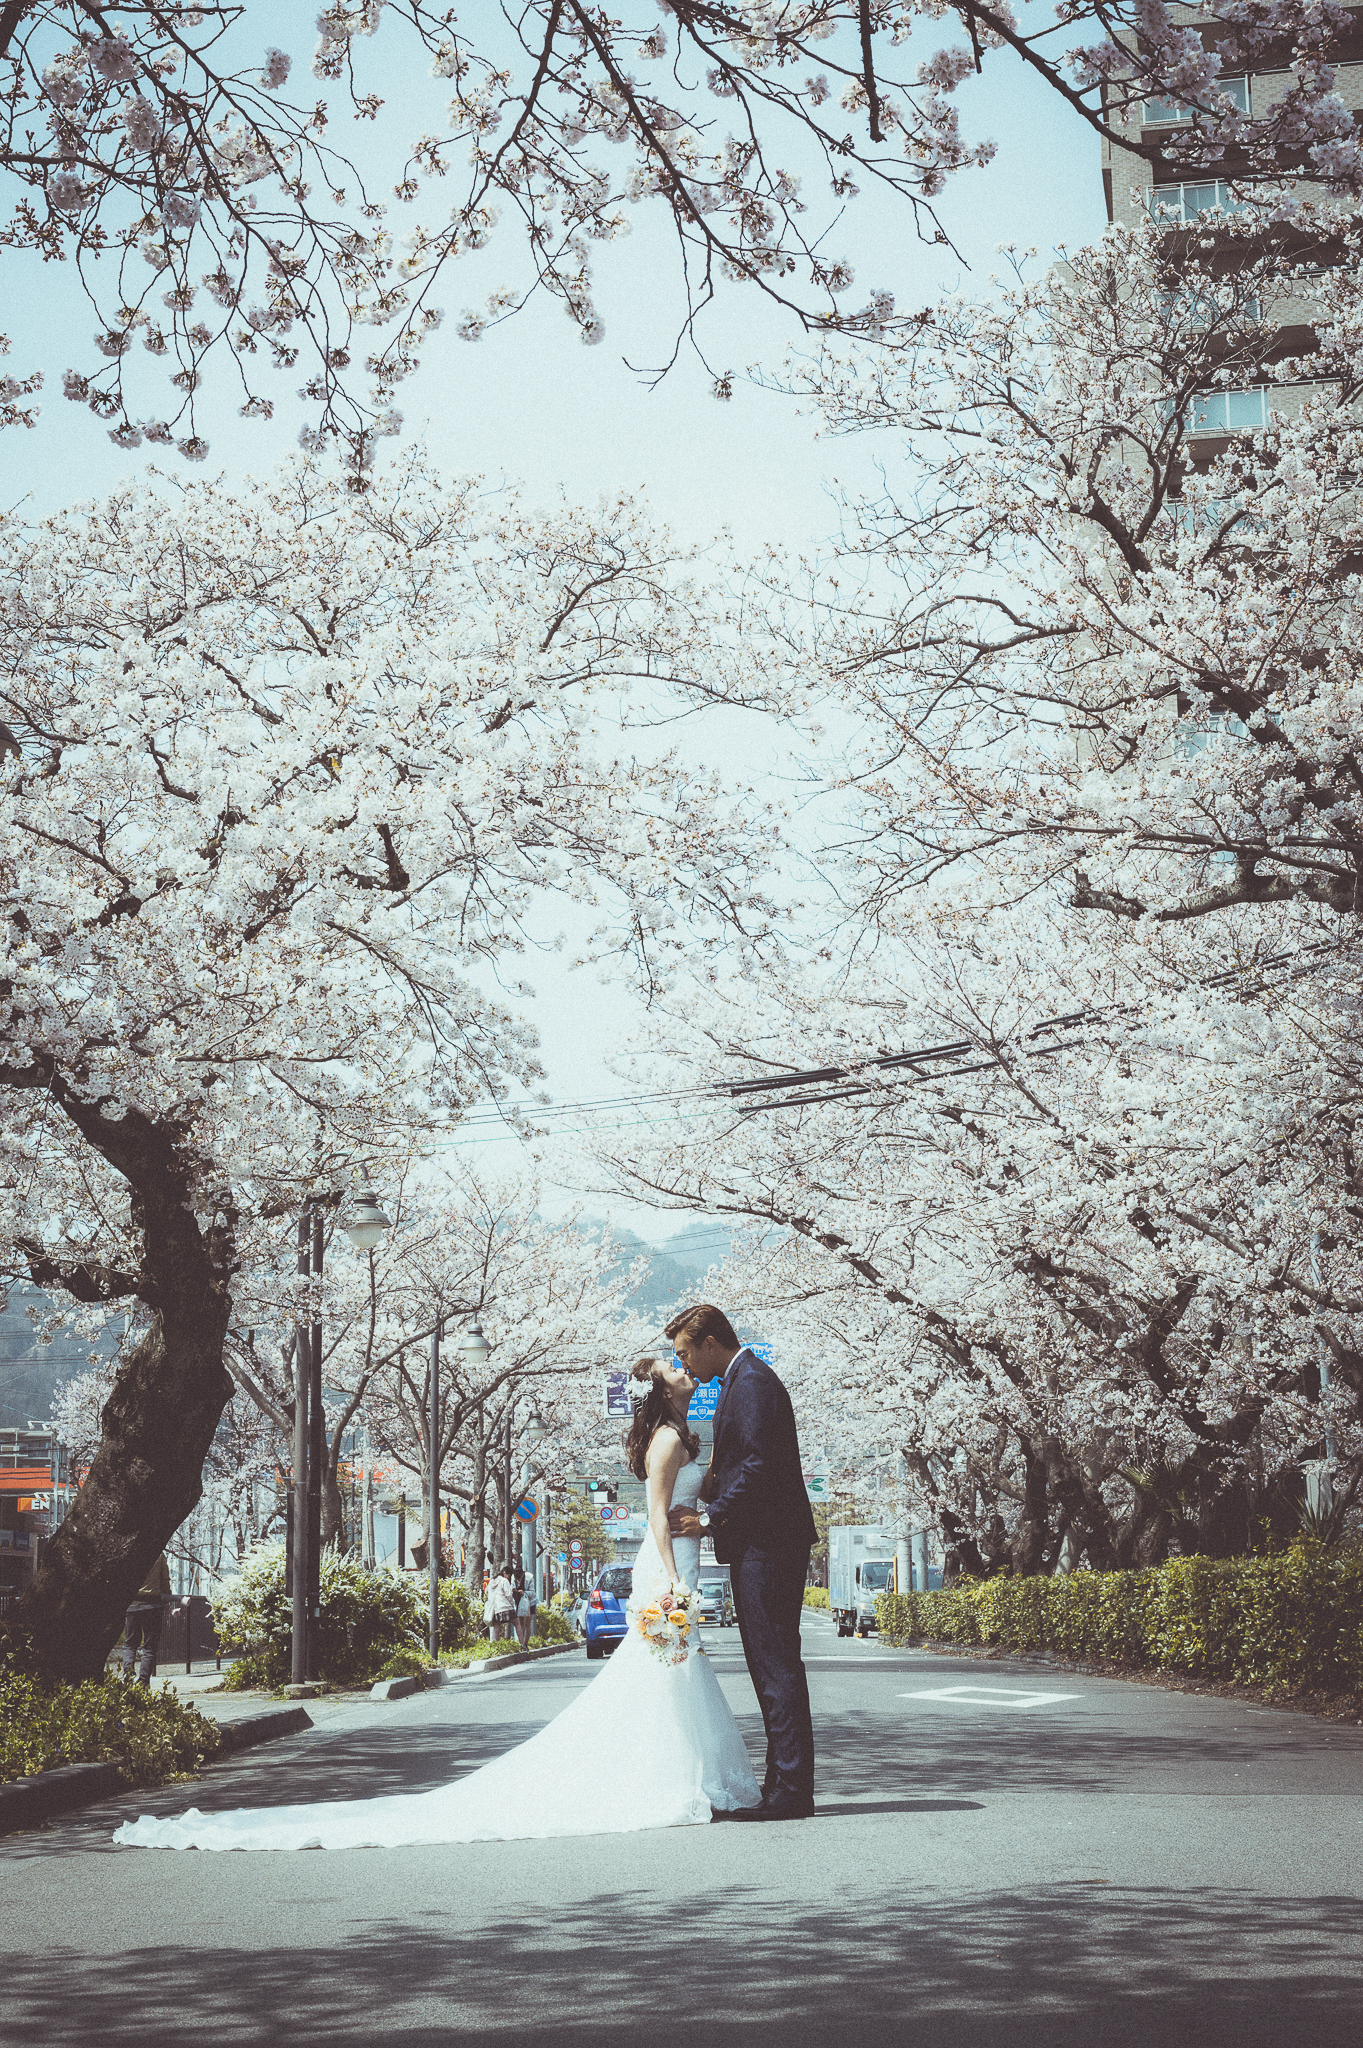 Japan, Kyoto Pre-wedding - $3588 includes- Airfare and Accommodation of the Photographer- 1.5 day shoot- 3 locations shoot on day 1, 0.5 Shrine-Kimono Shoot on the 2nd day- Package includes Kimono rental for 1 day-1 Local guide/translator and 1 Accompany MUA throughout the shoot.- 2 x Make up and Hairstyling- Transportation for 1.5 day shoot- Meals and expenses excluded- Permit and Entrances fees excluded